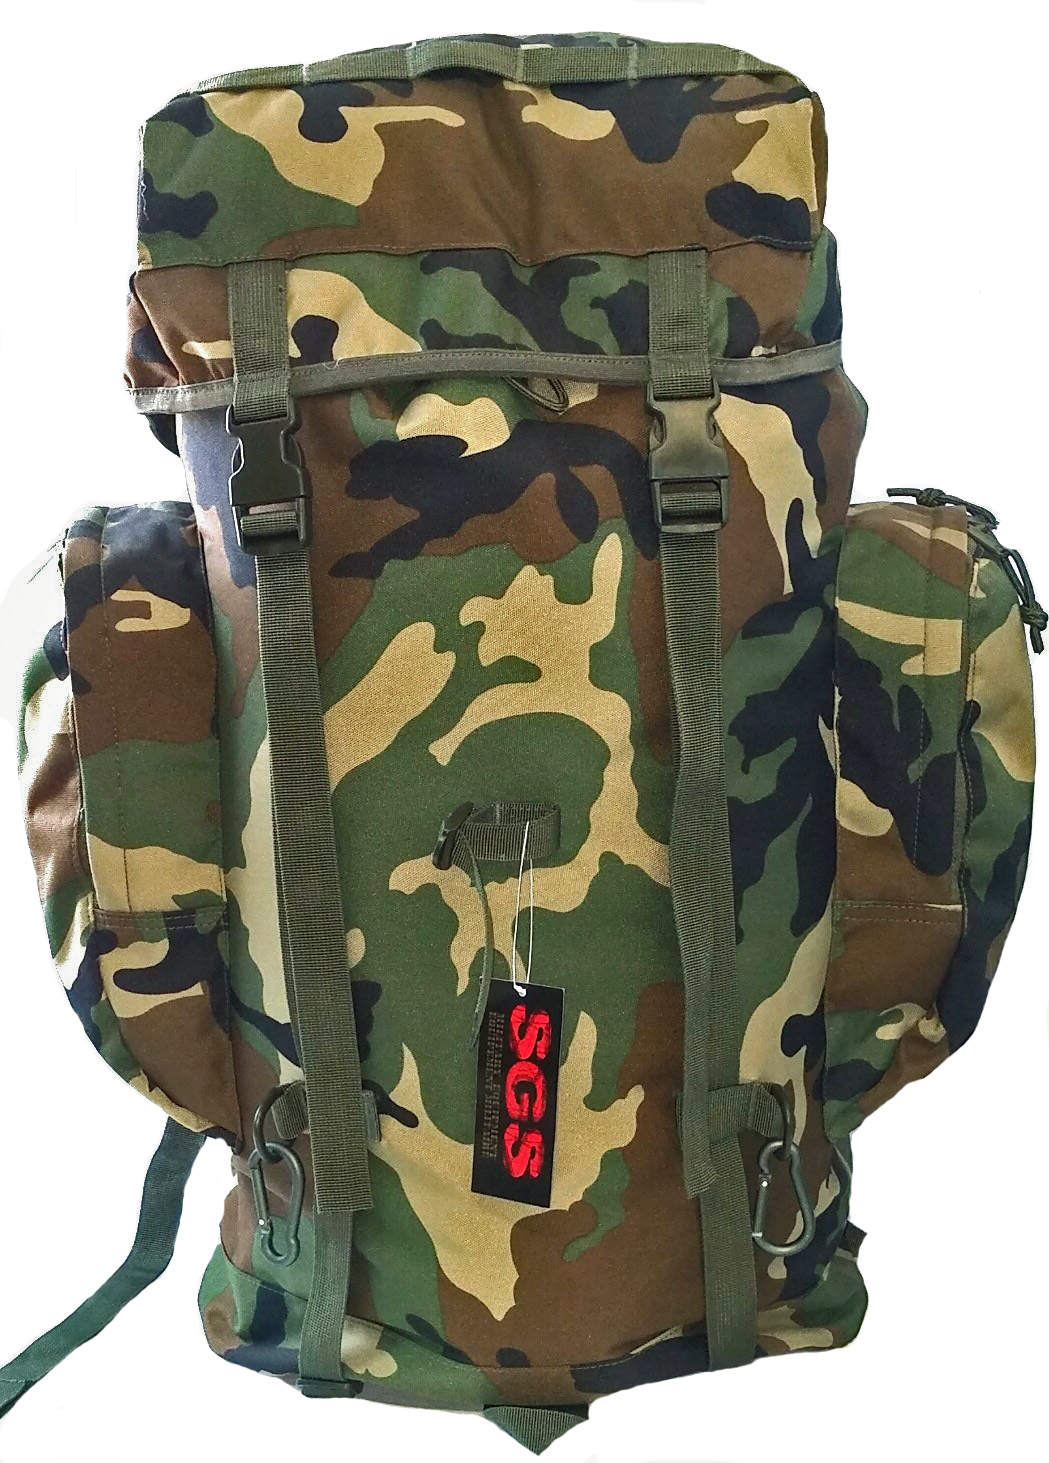 SGS Woodland backpack 65 liters